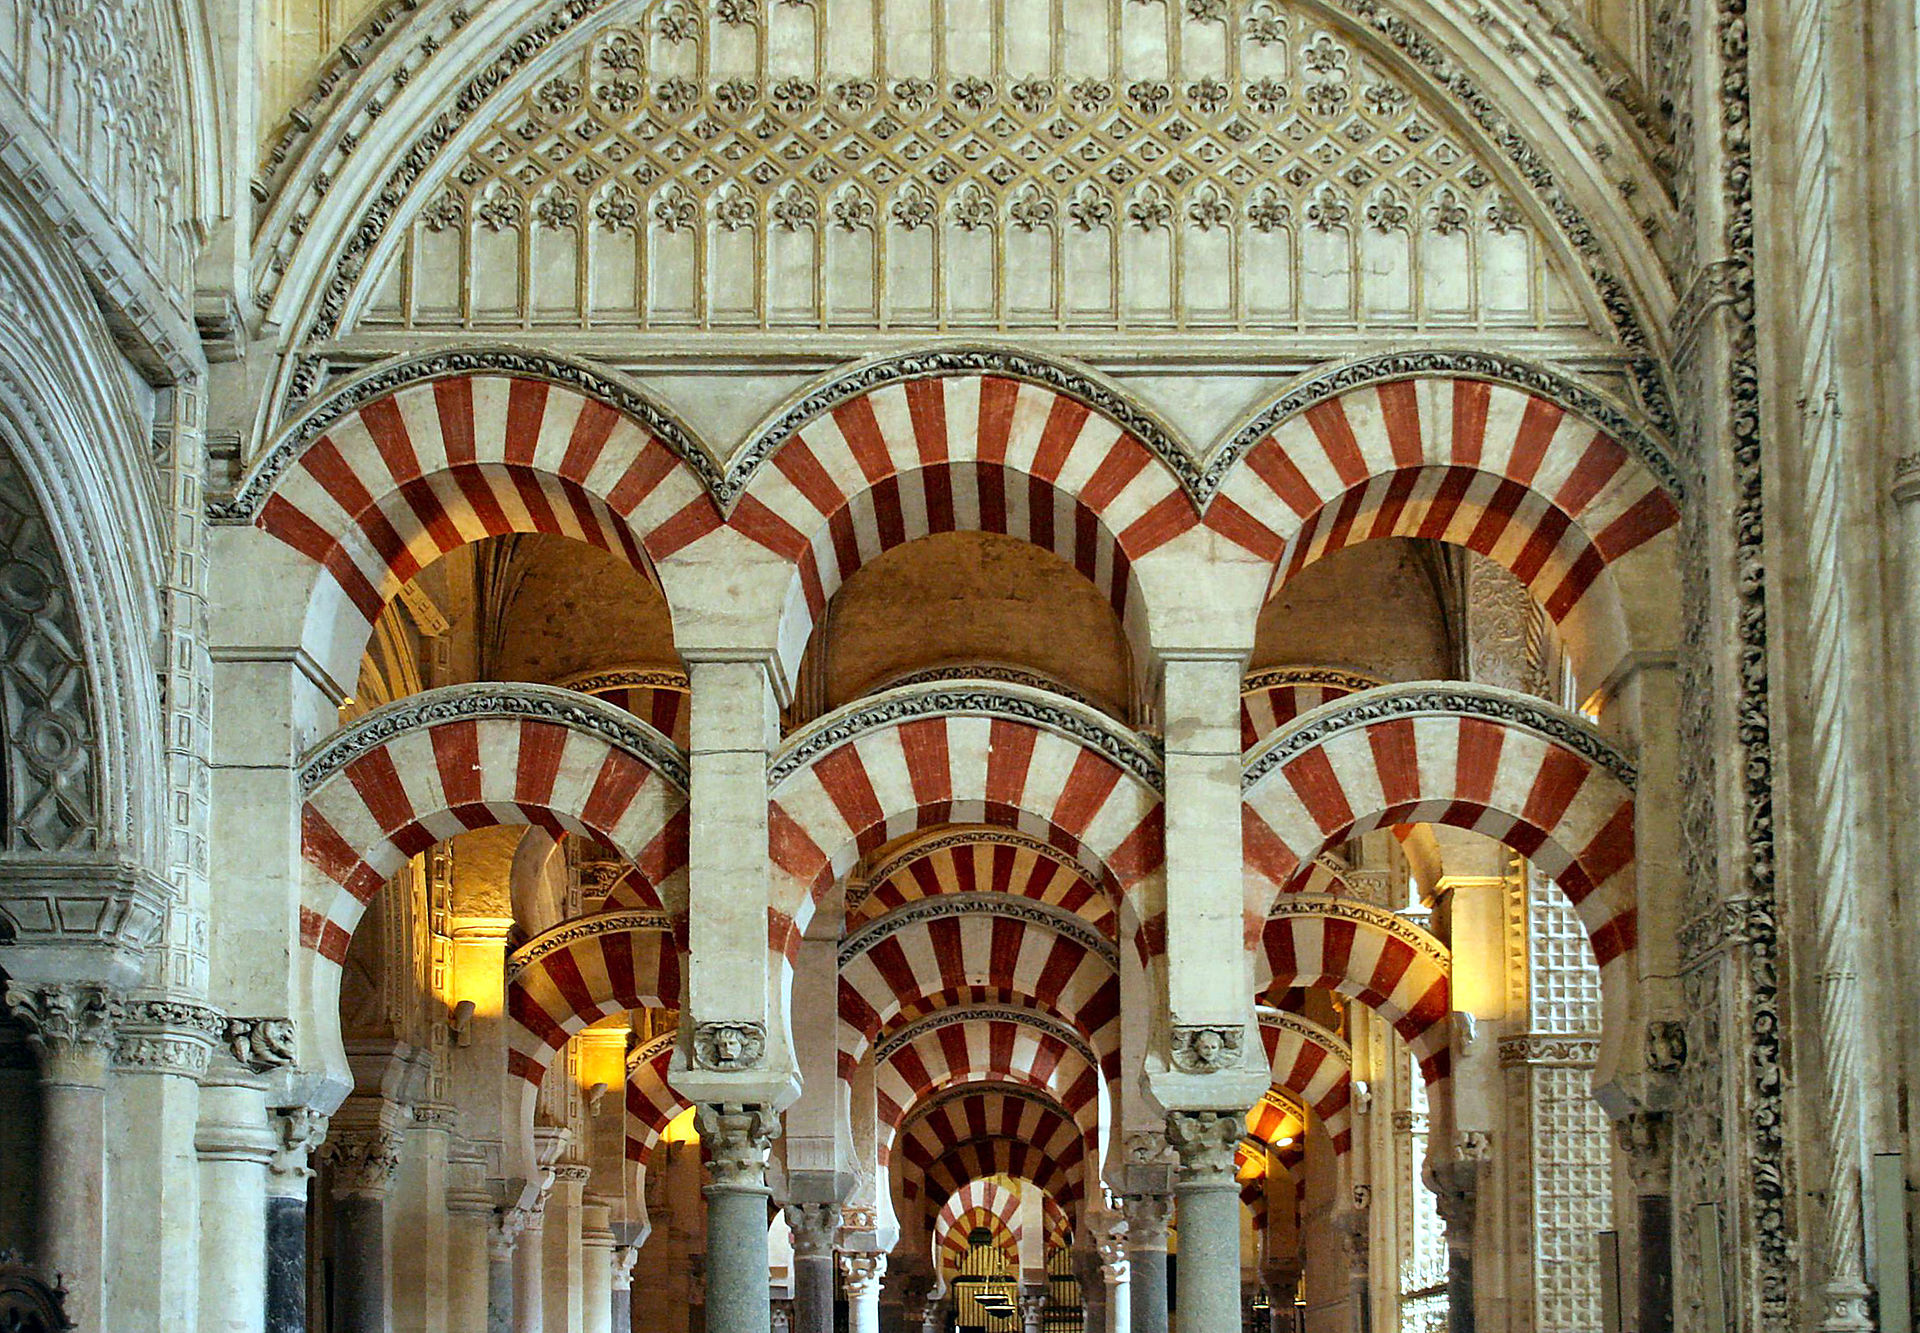 Texture, color, pattern and lighting are key elements in the design of the Mosque of Cordoba. The stripes were made using two different materials and the overlapping arches create new geometric forms. -Image from  Wikipedia .